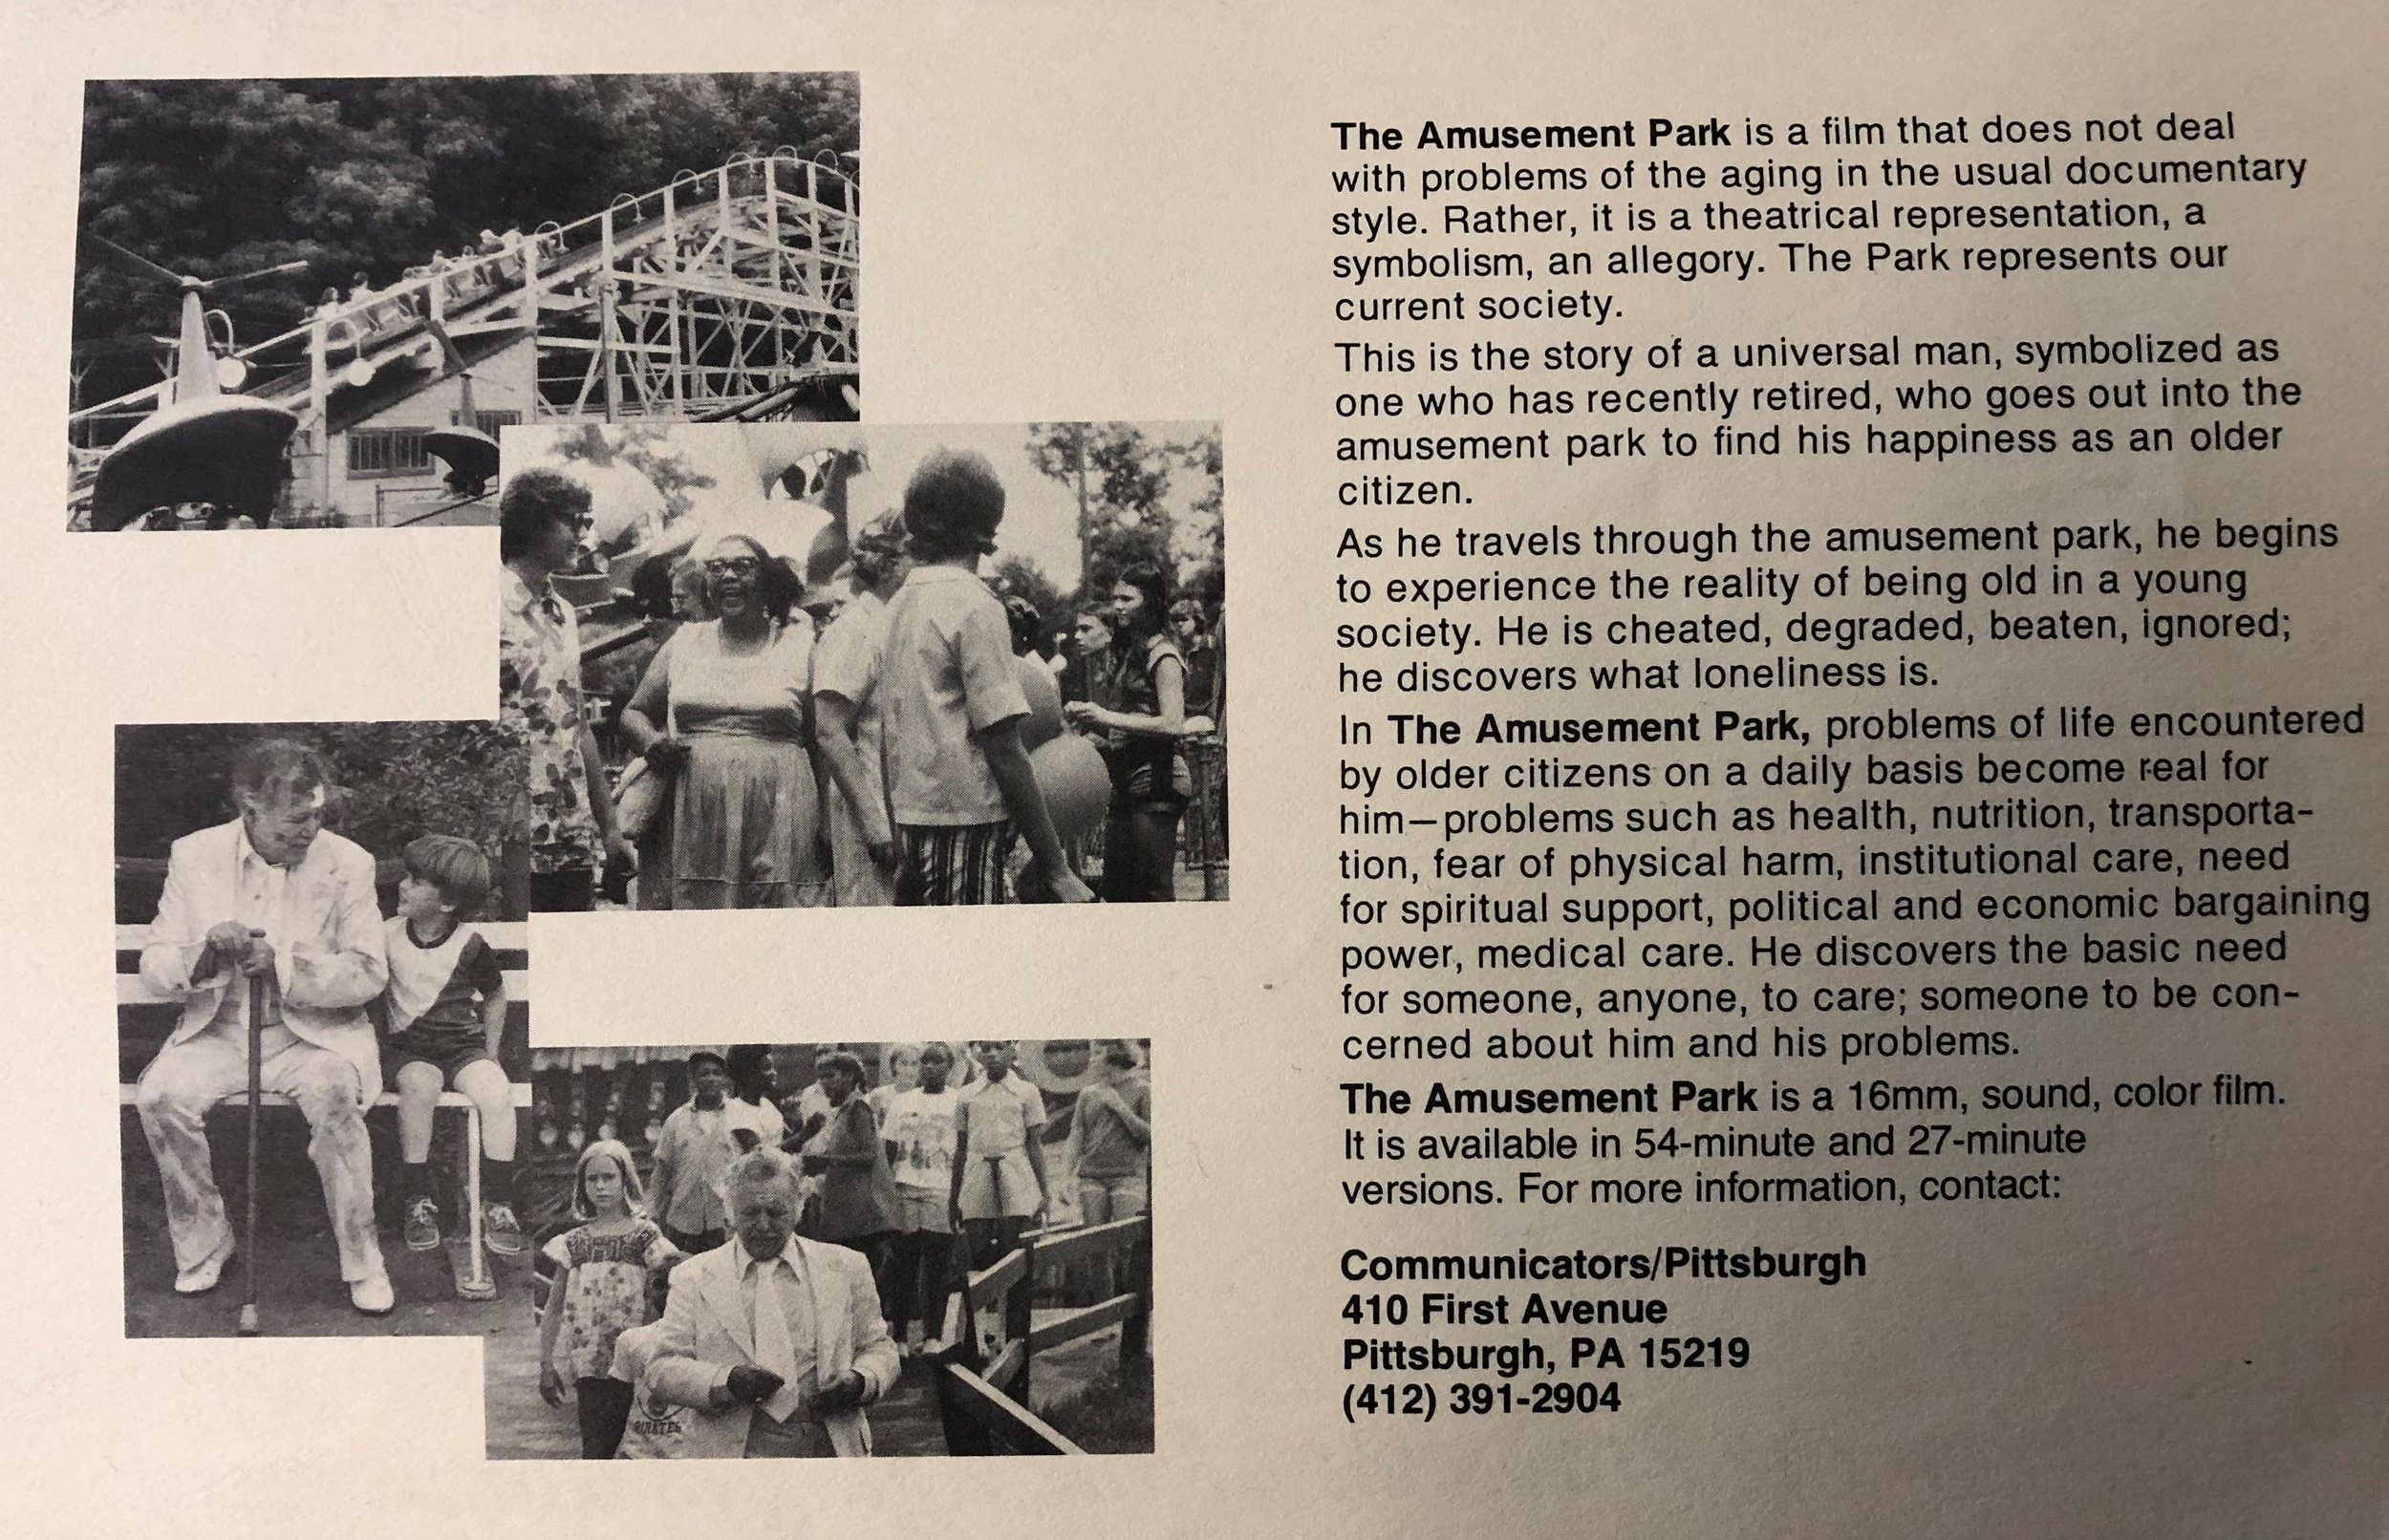 Amusement Park brochure3.jpg